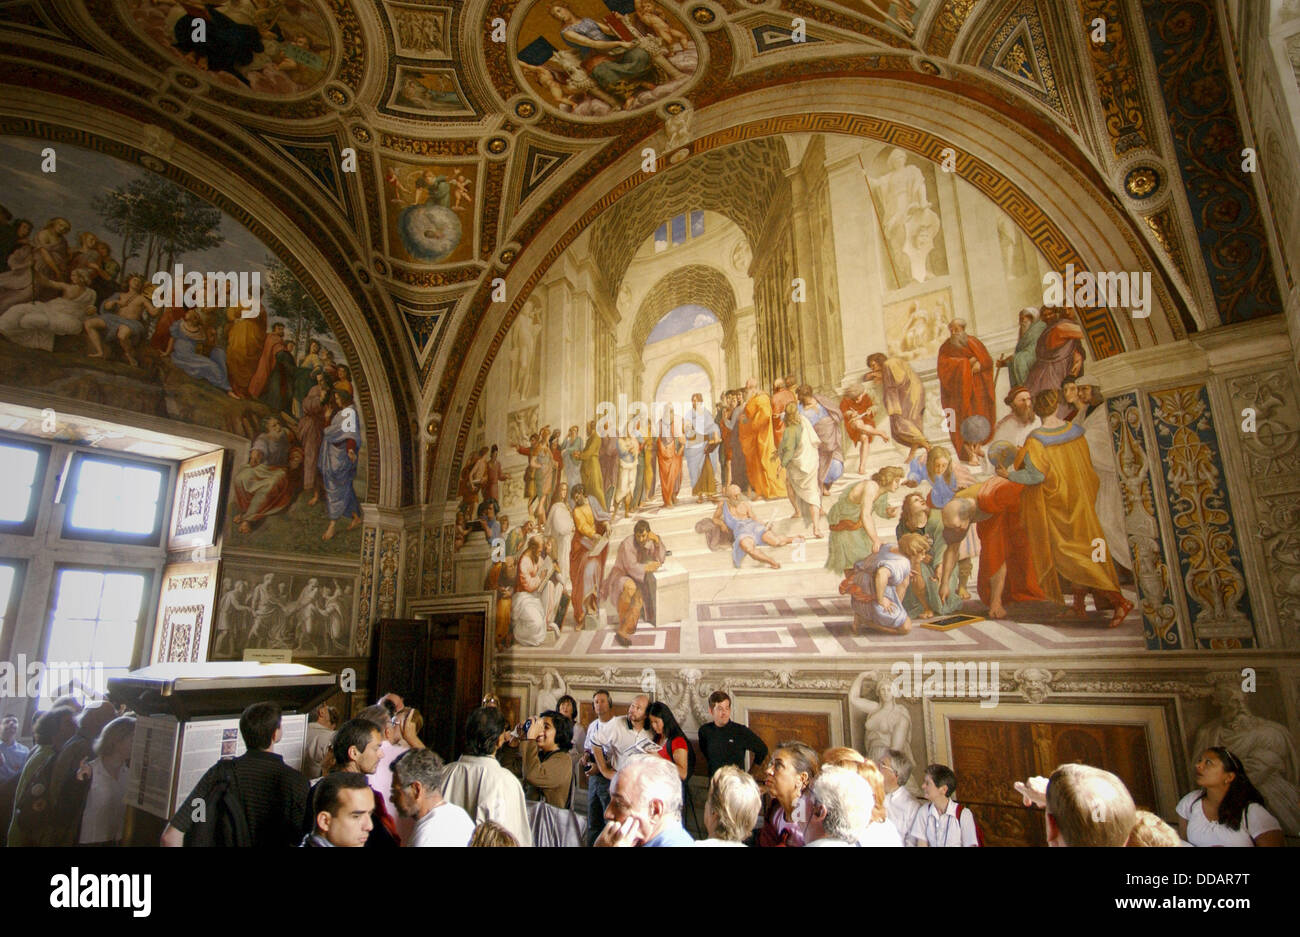 raphael the school of athens Raphael exemplifies high renaissance painting with his grand renderings of the madonna in landscape settings the figurative scenes with which he decorated the vatican his celebrated depiction of plato, aristotle, and other sages in his school of athens (1510-12) fresco for the vatican reflects the inspiration he drew from.